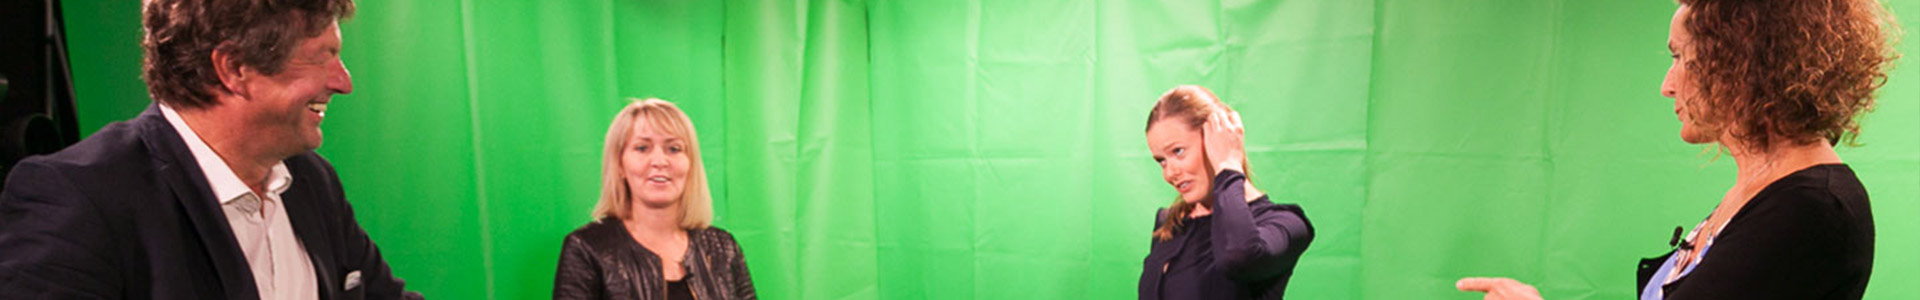 Green Screen Studie